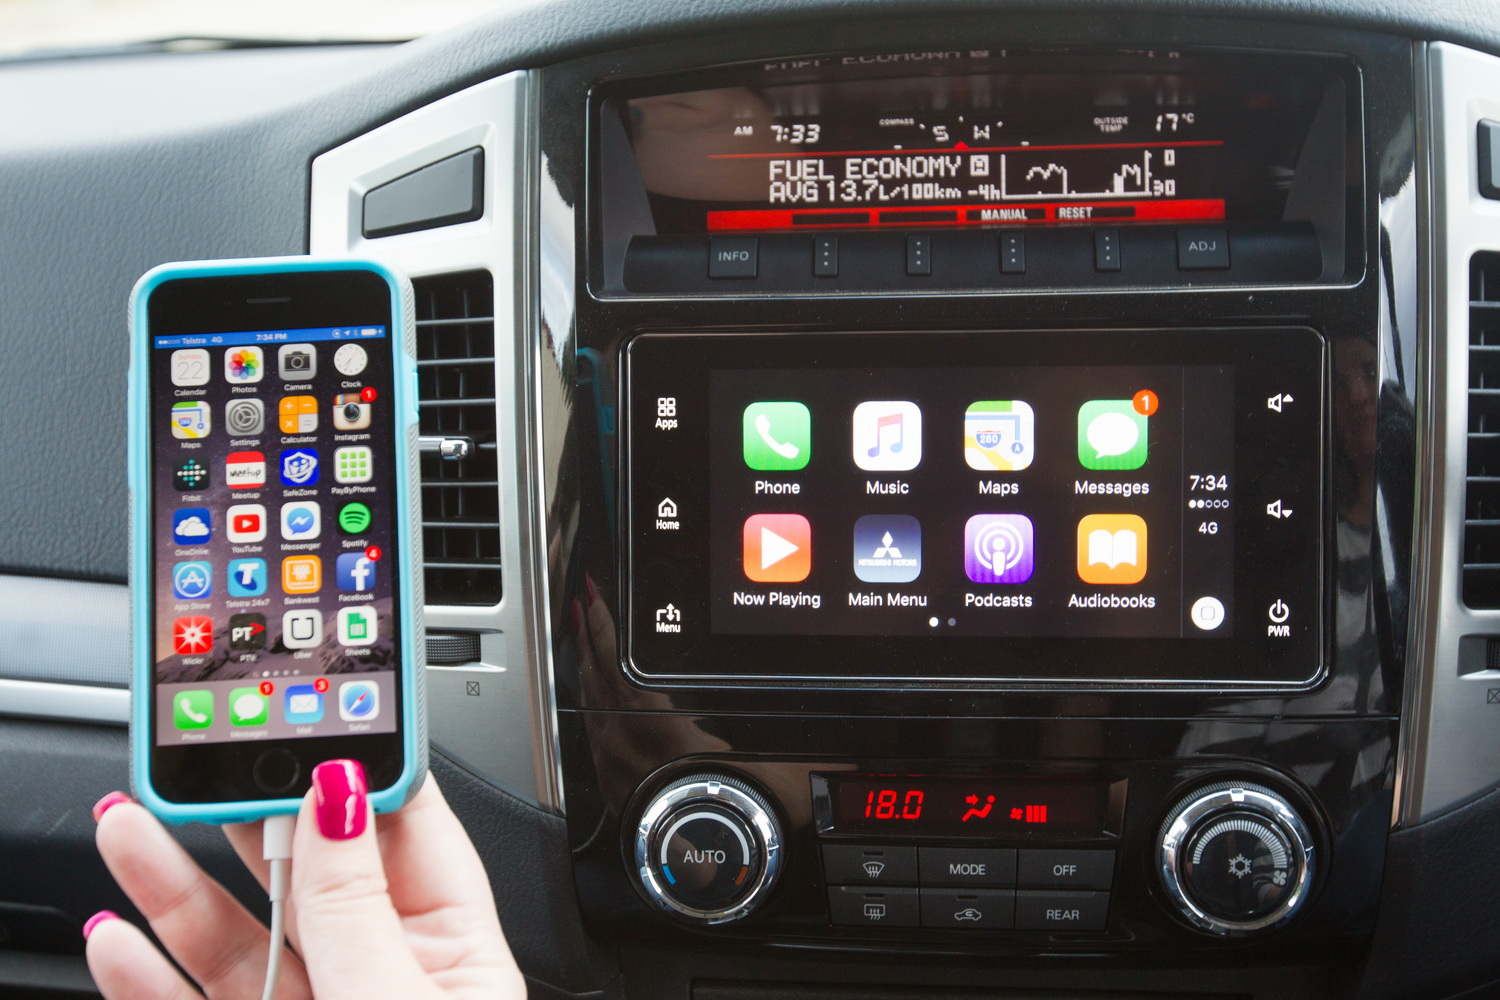 testing android auto and apple carplay in a 2016 mitsubishi pajero gls practical motoring. Black Bedroom Furniture Sets. Home Design Ideas